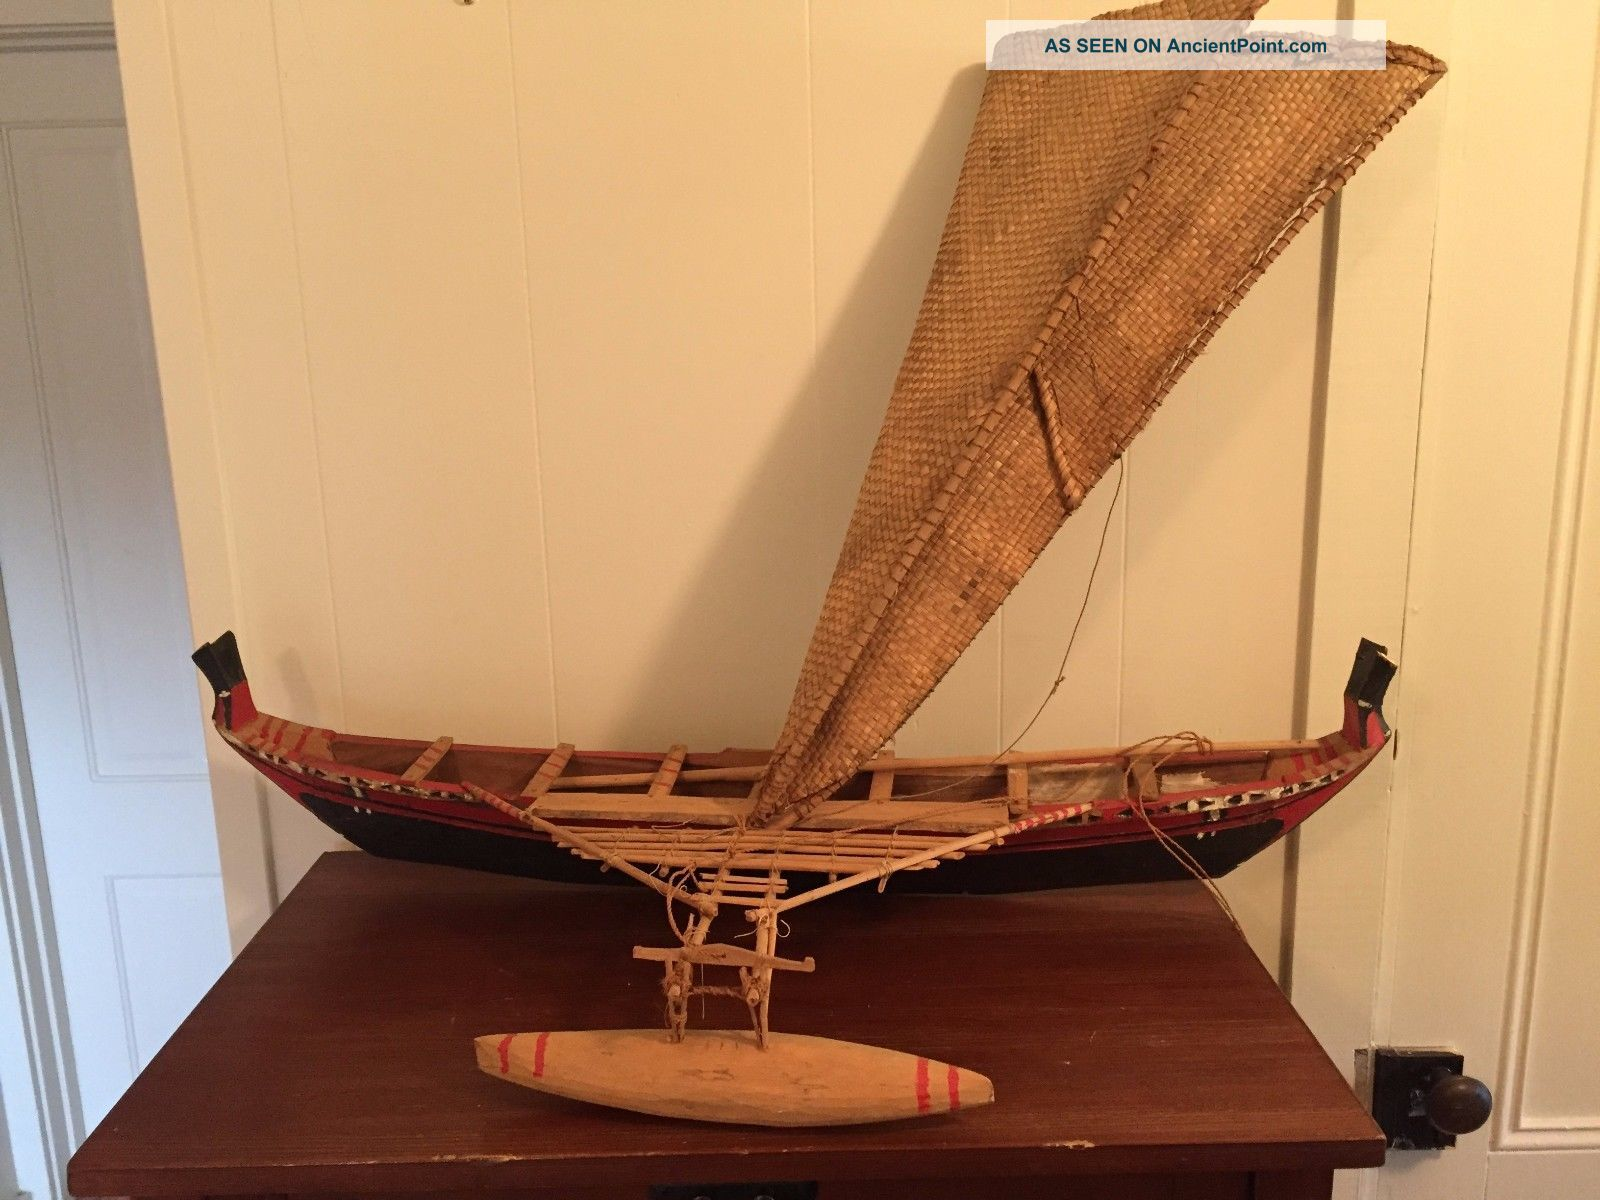 Yap Island Albatross Tail Prow Outrigger Canoe Model Lauhala Sail Micronesia Pacific Islands & Oceania photo